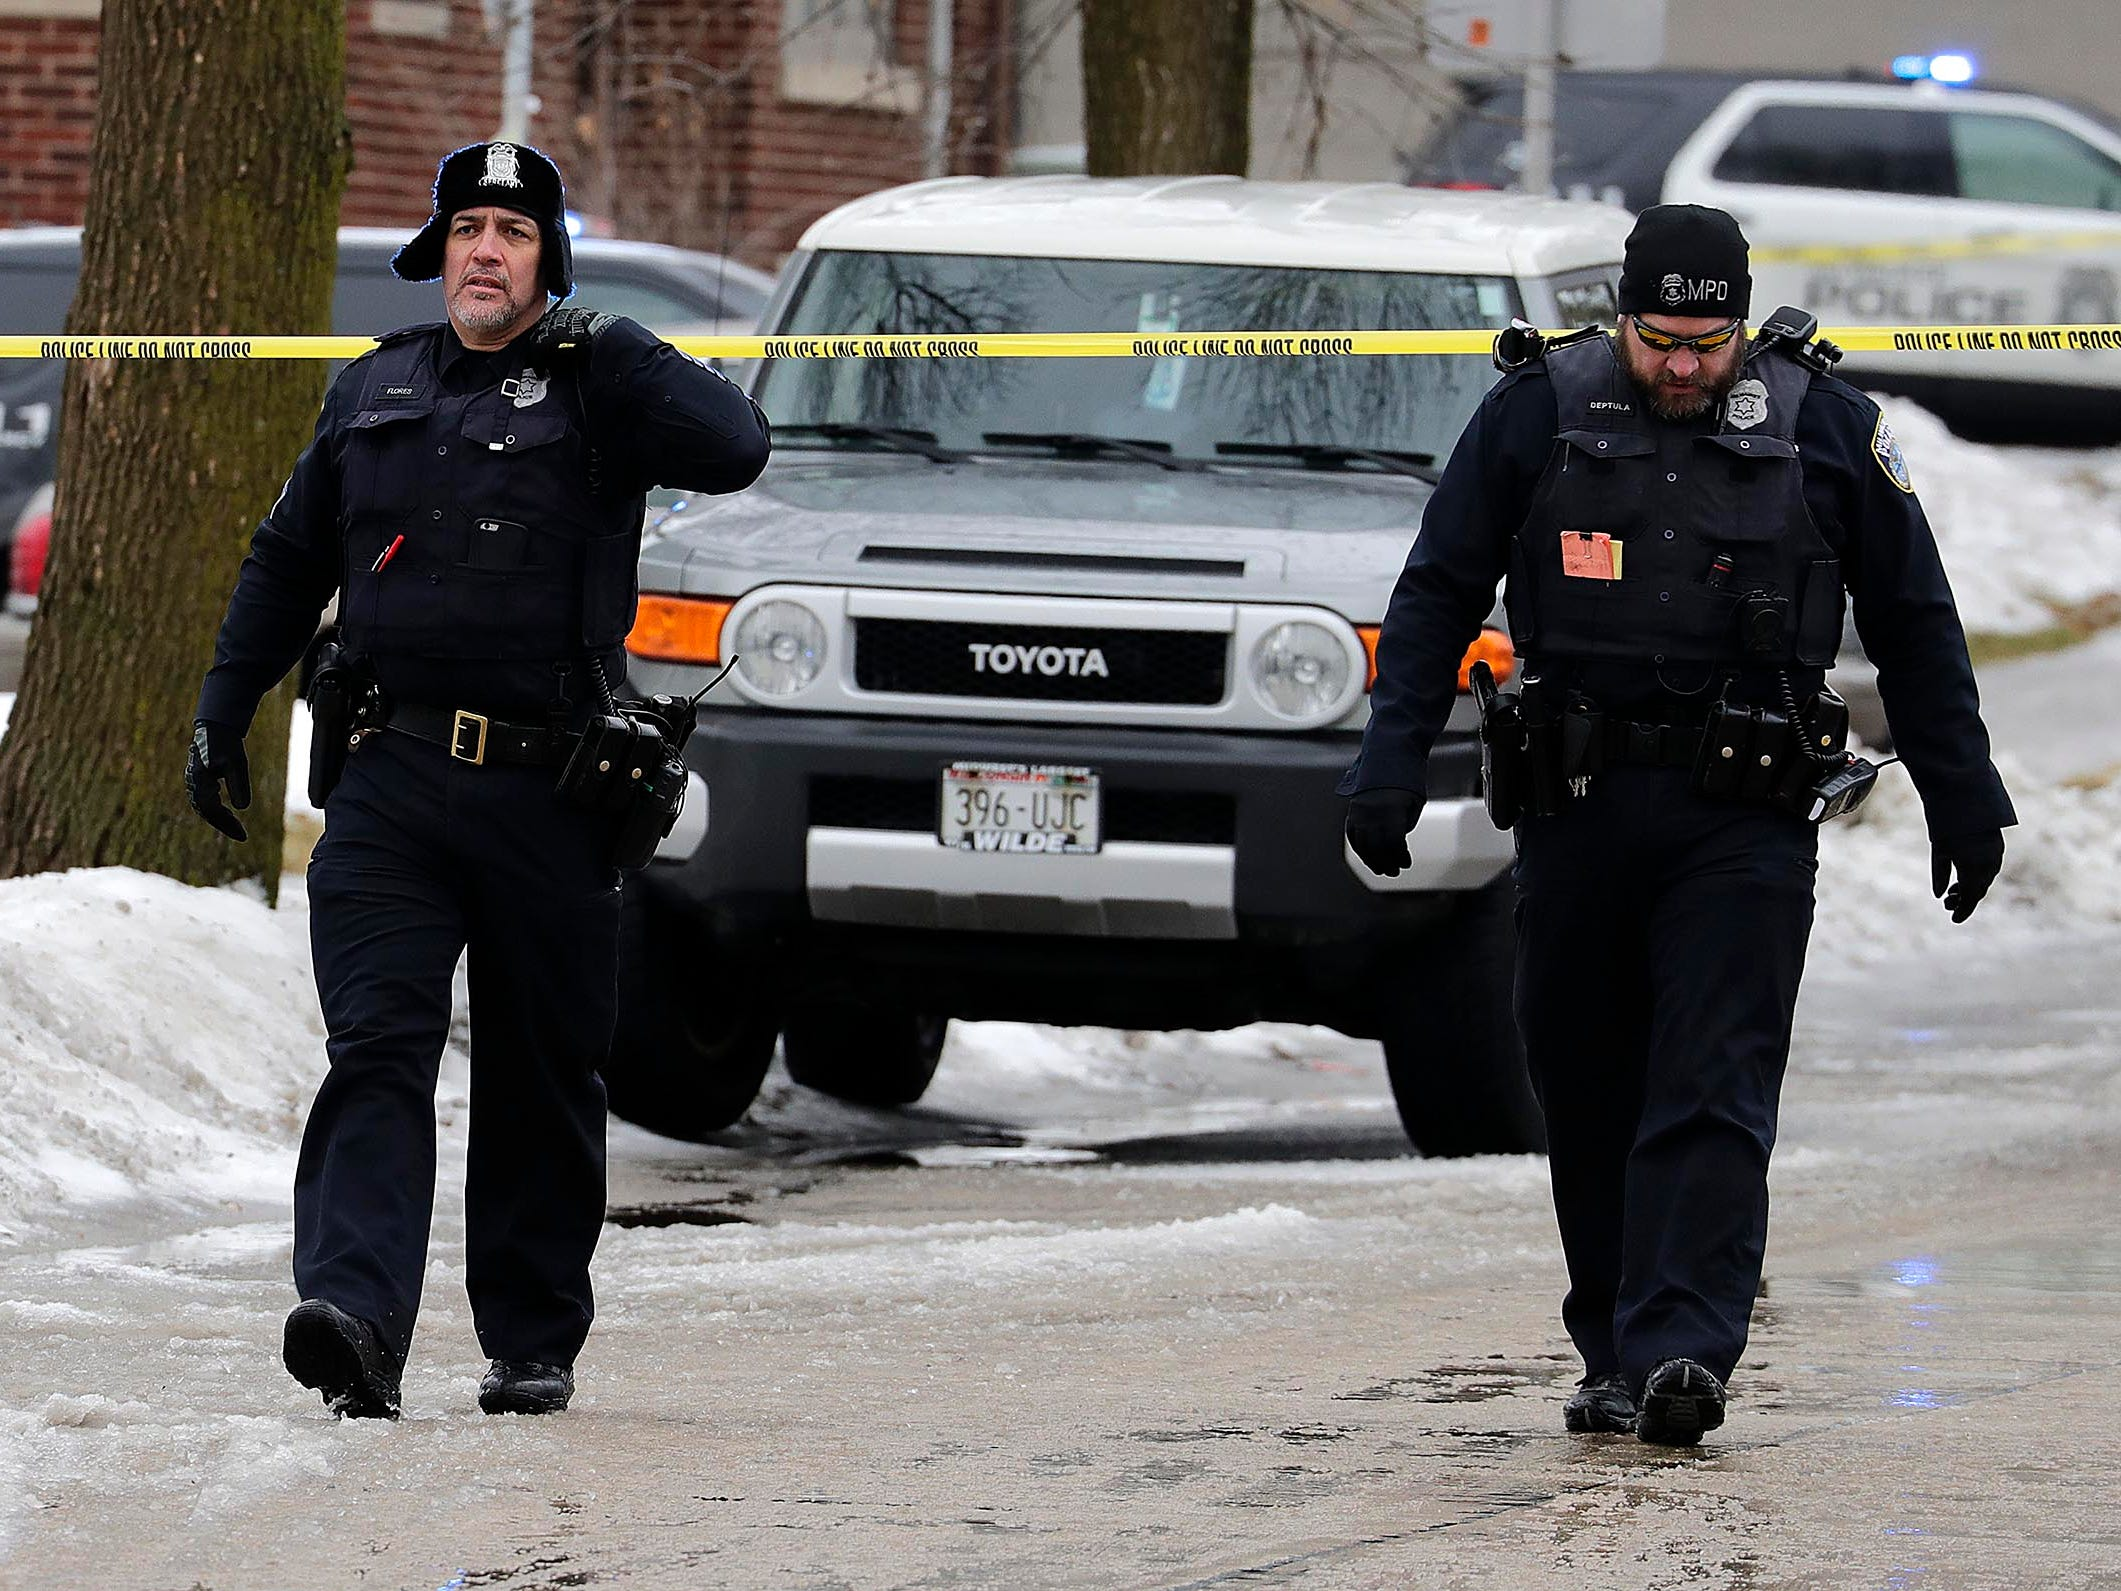 Milwaukee police officers leave the scene where a Milwaukee Police officer was shot Wednesday morning on the city's south side. The officer died.